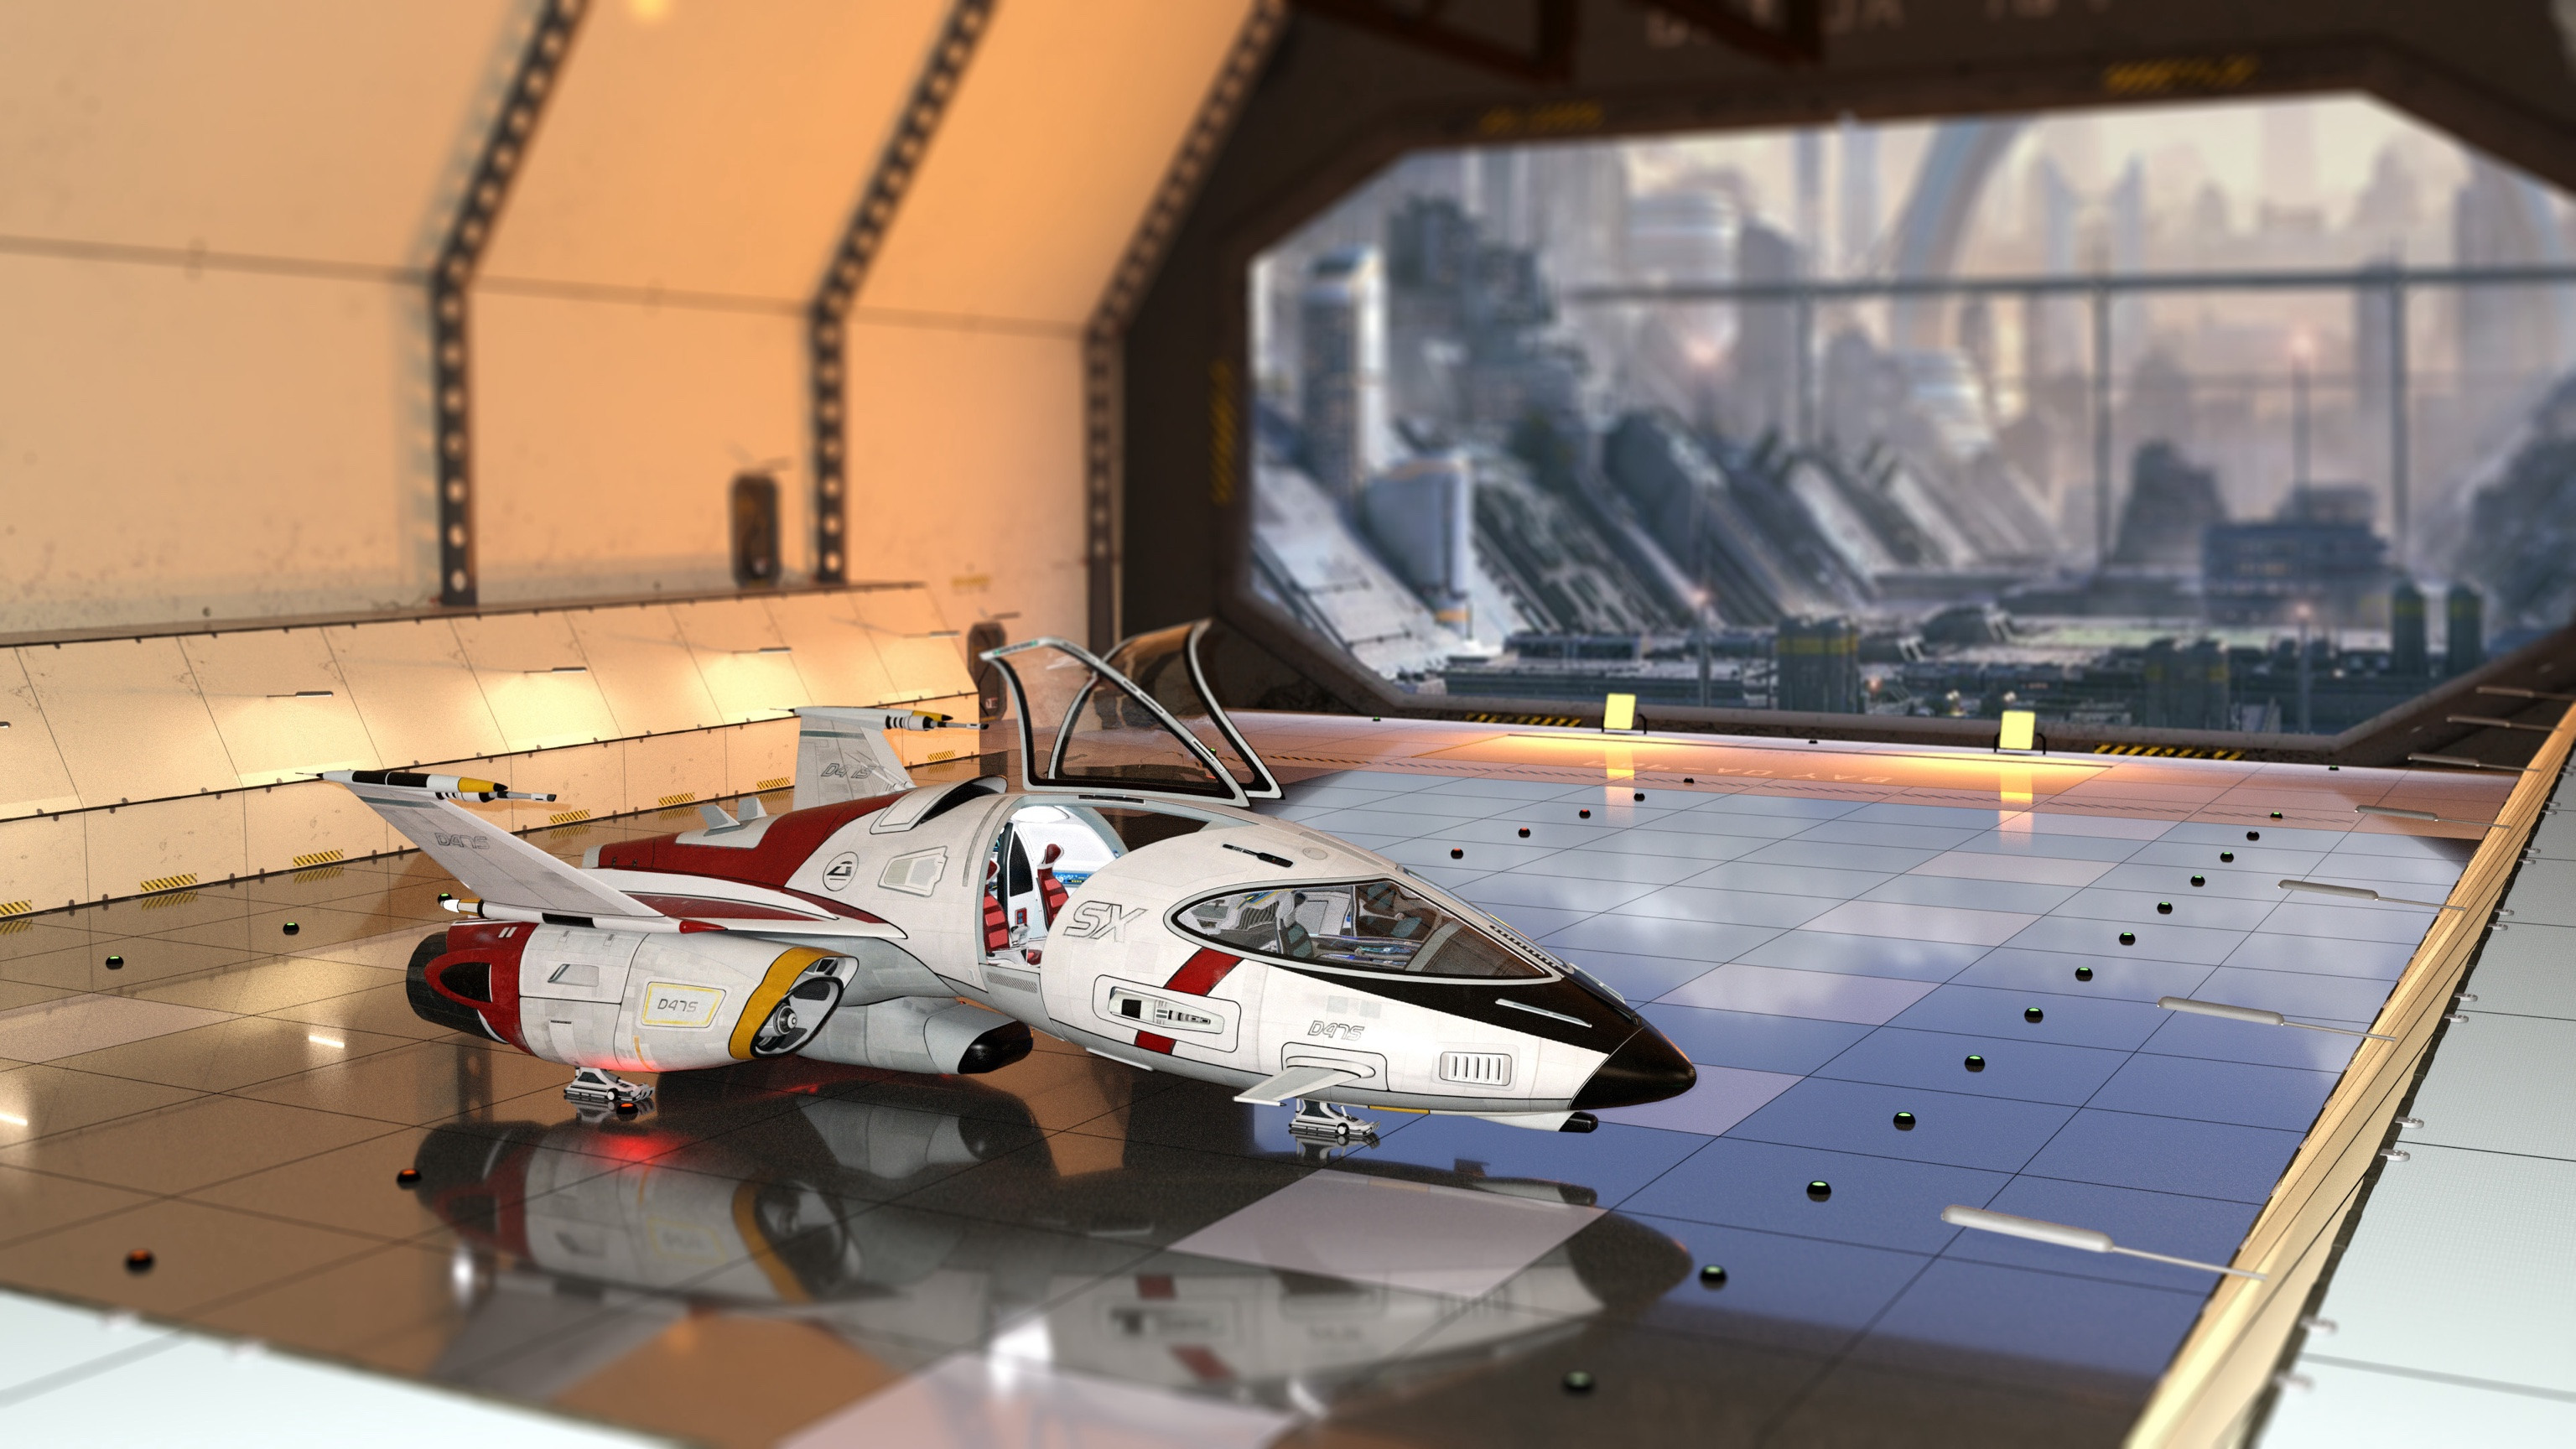 Hangar scene with the Shuttlestar, by Kibaretto one of my all time favorite 3D content creators, and whose affordable pricing I can say got me into making 3d art.